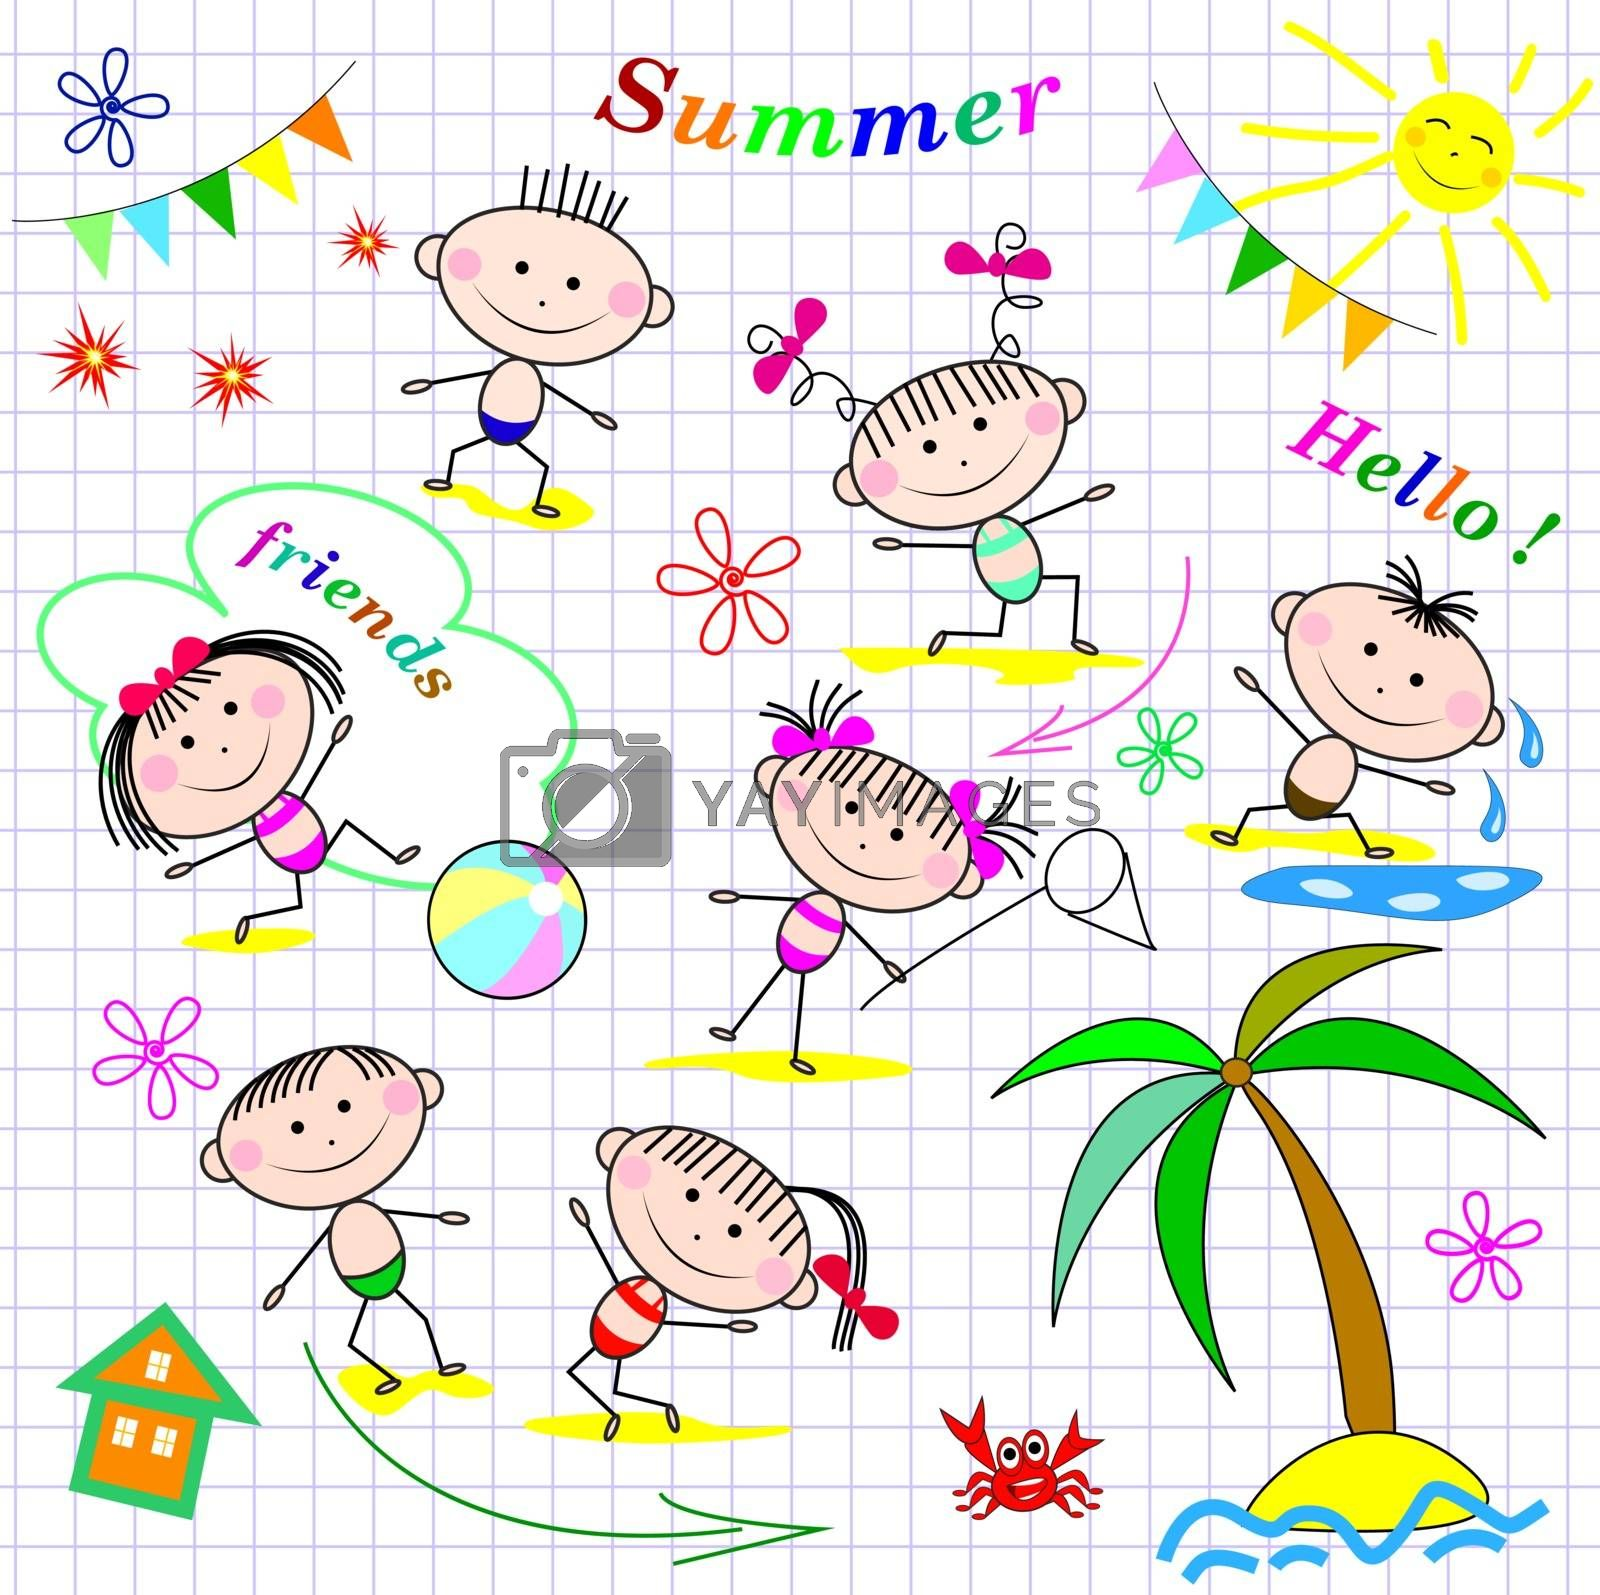 Small children at the beach. Children having fun and relaxing in the summer.